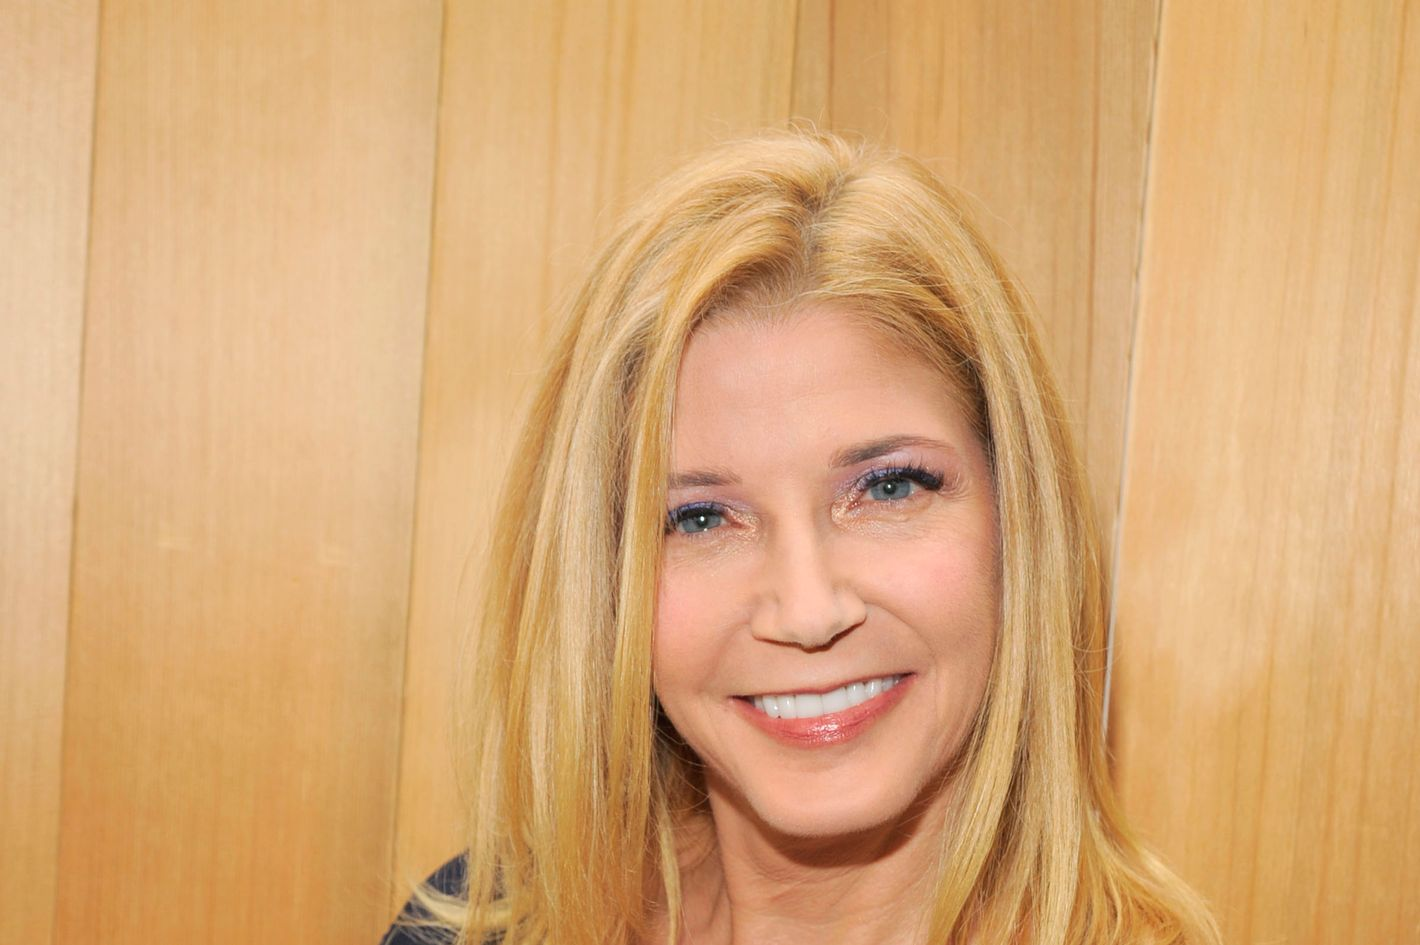 Candace Bushnell Author Candace Bushnell Prefers Bloody Marys To Cosmos And Buys